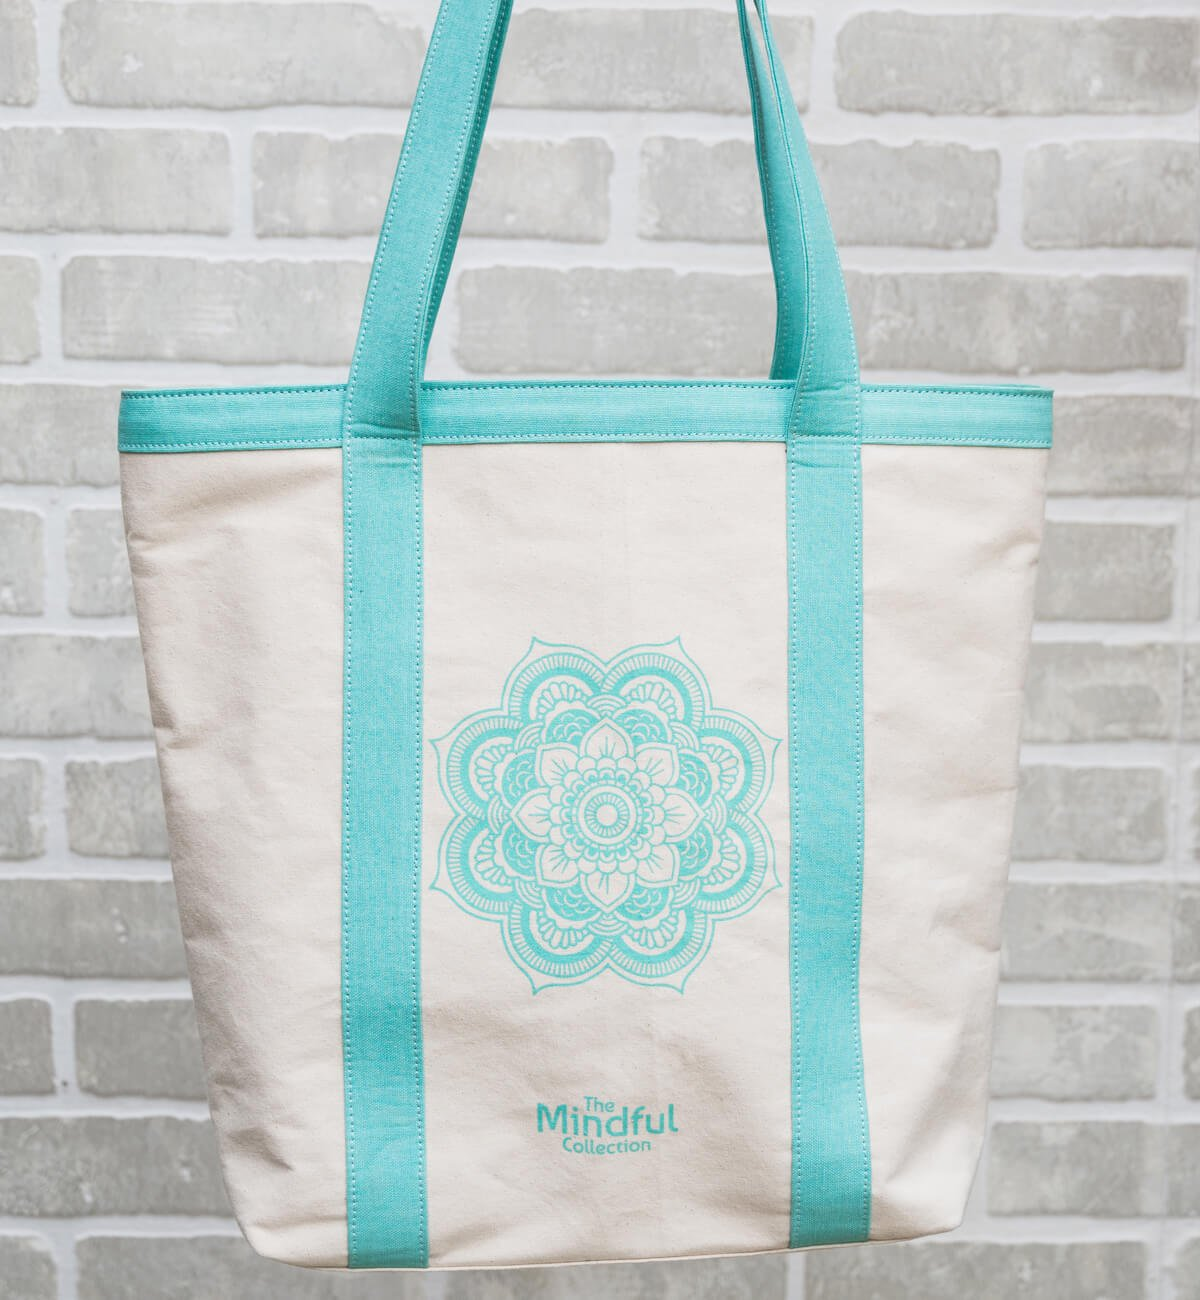 The Mindful Tote Bag (The Mindful Collection)